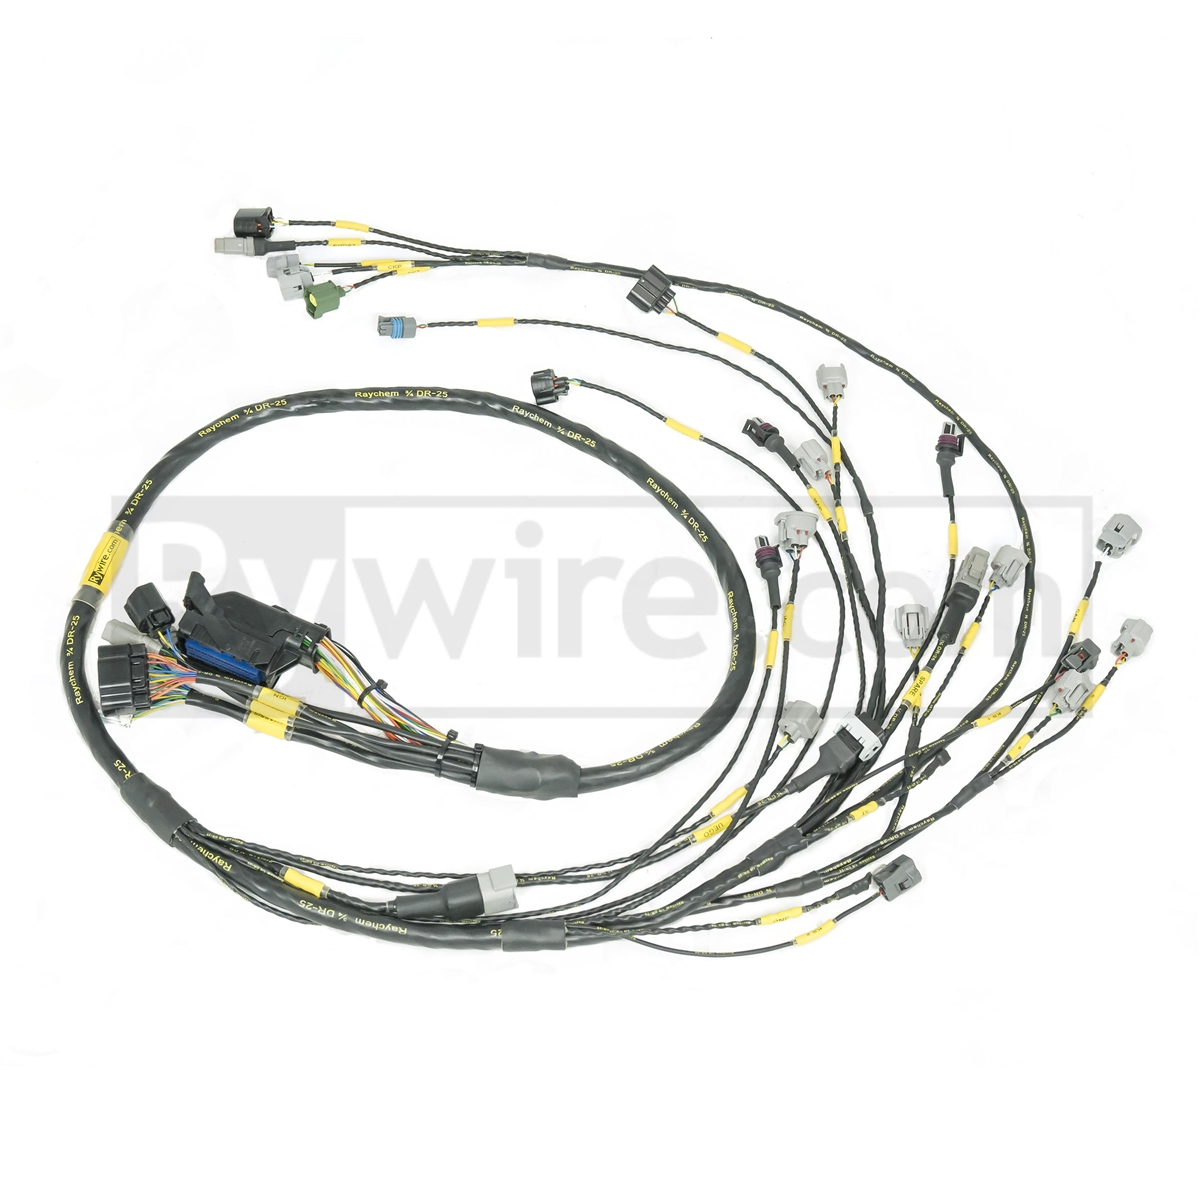 Infinity Aem Wireing Harness 2jz Free Download Wiring Toyota 506 Mil Spec Engine Dodge At